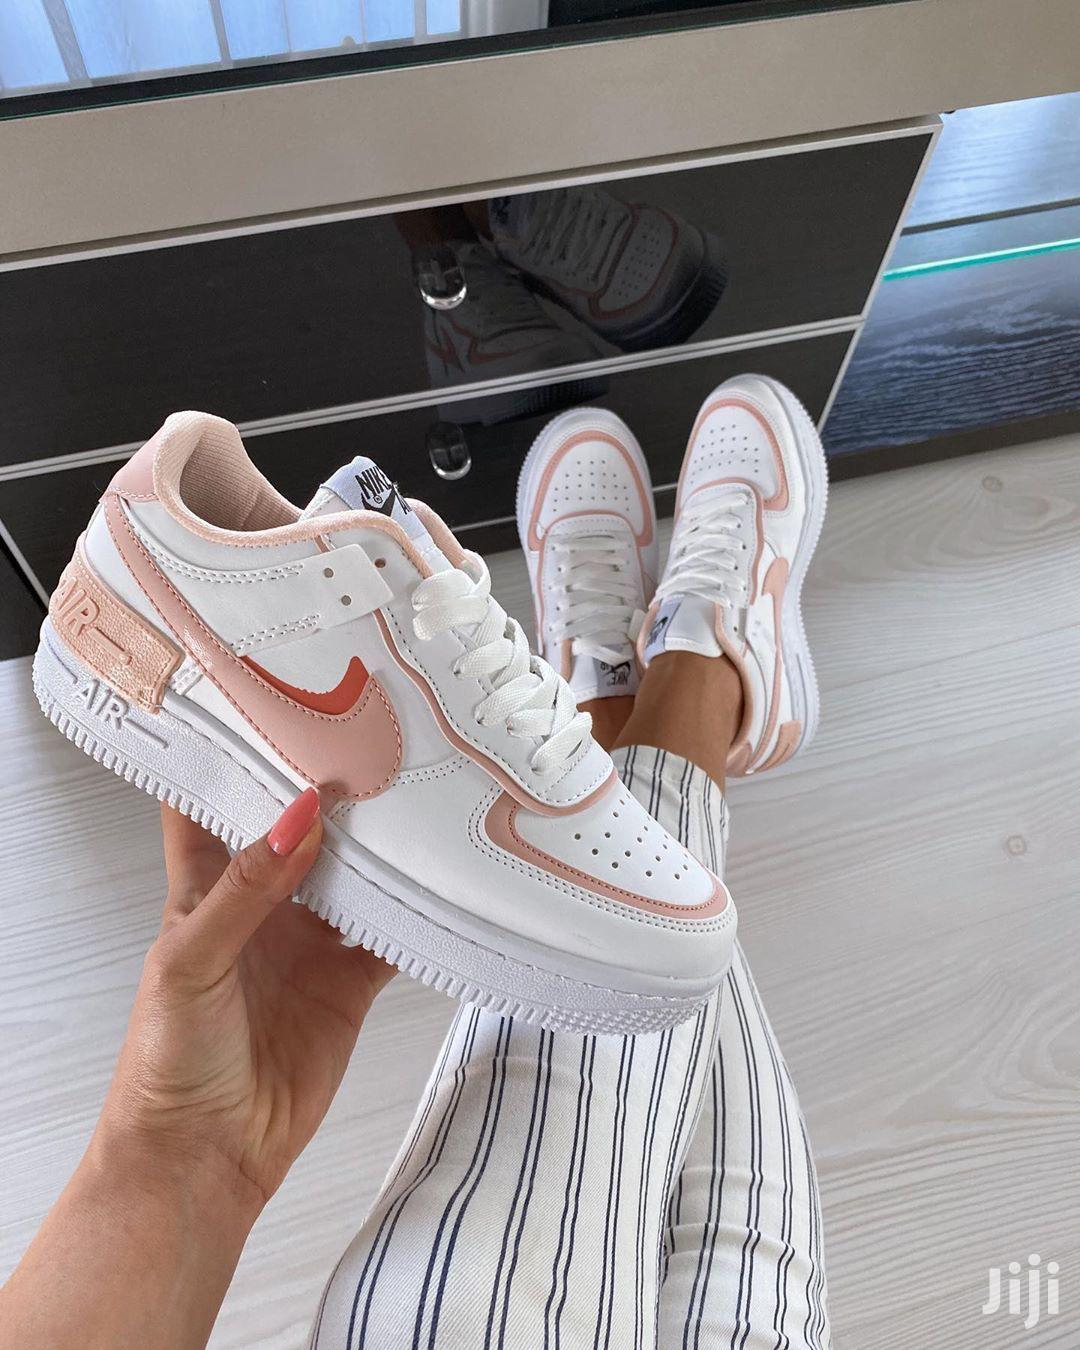 Sneakers, Quality | Shoes for sale in Accra Metropolitan, Greater Accra, Ghana